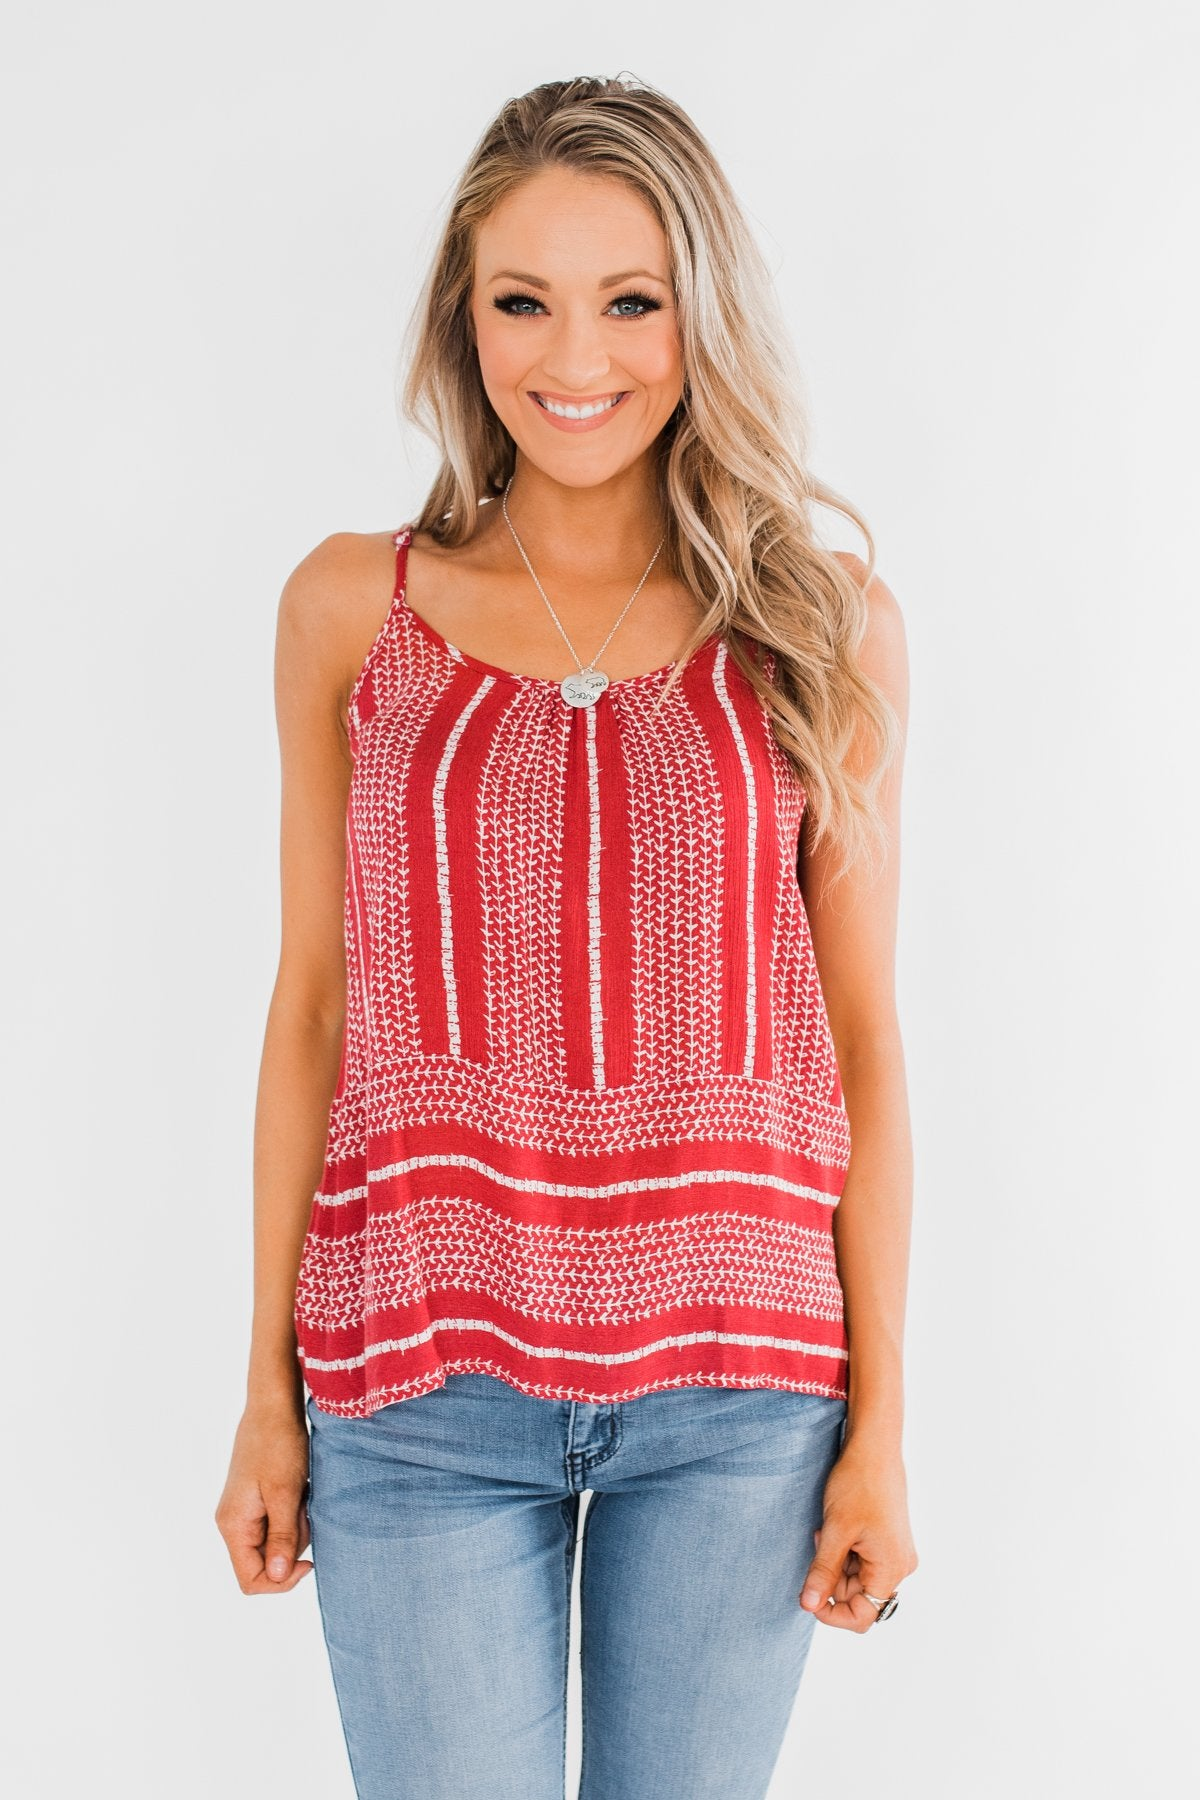 Amazed by Beauty Shift Tank Top- Raspberry Red